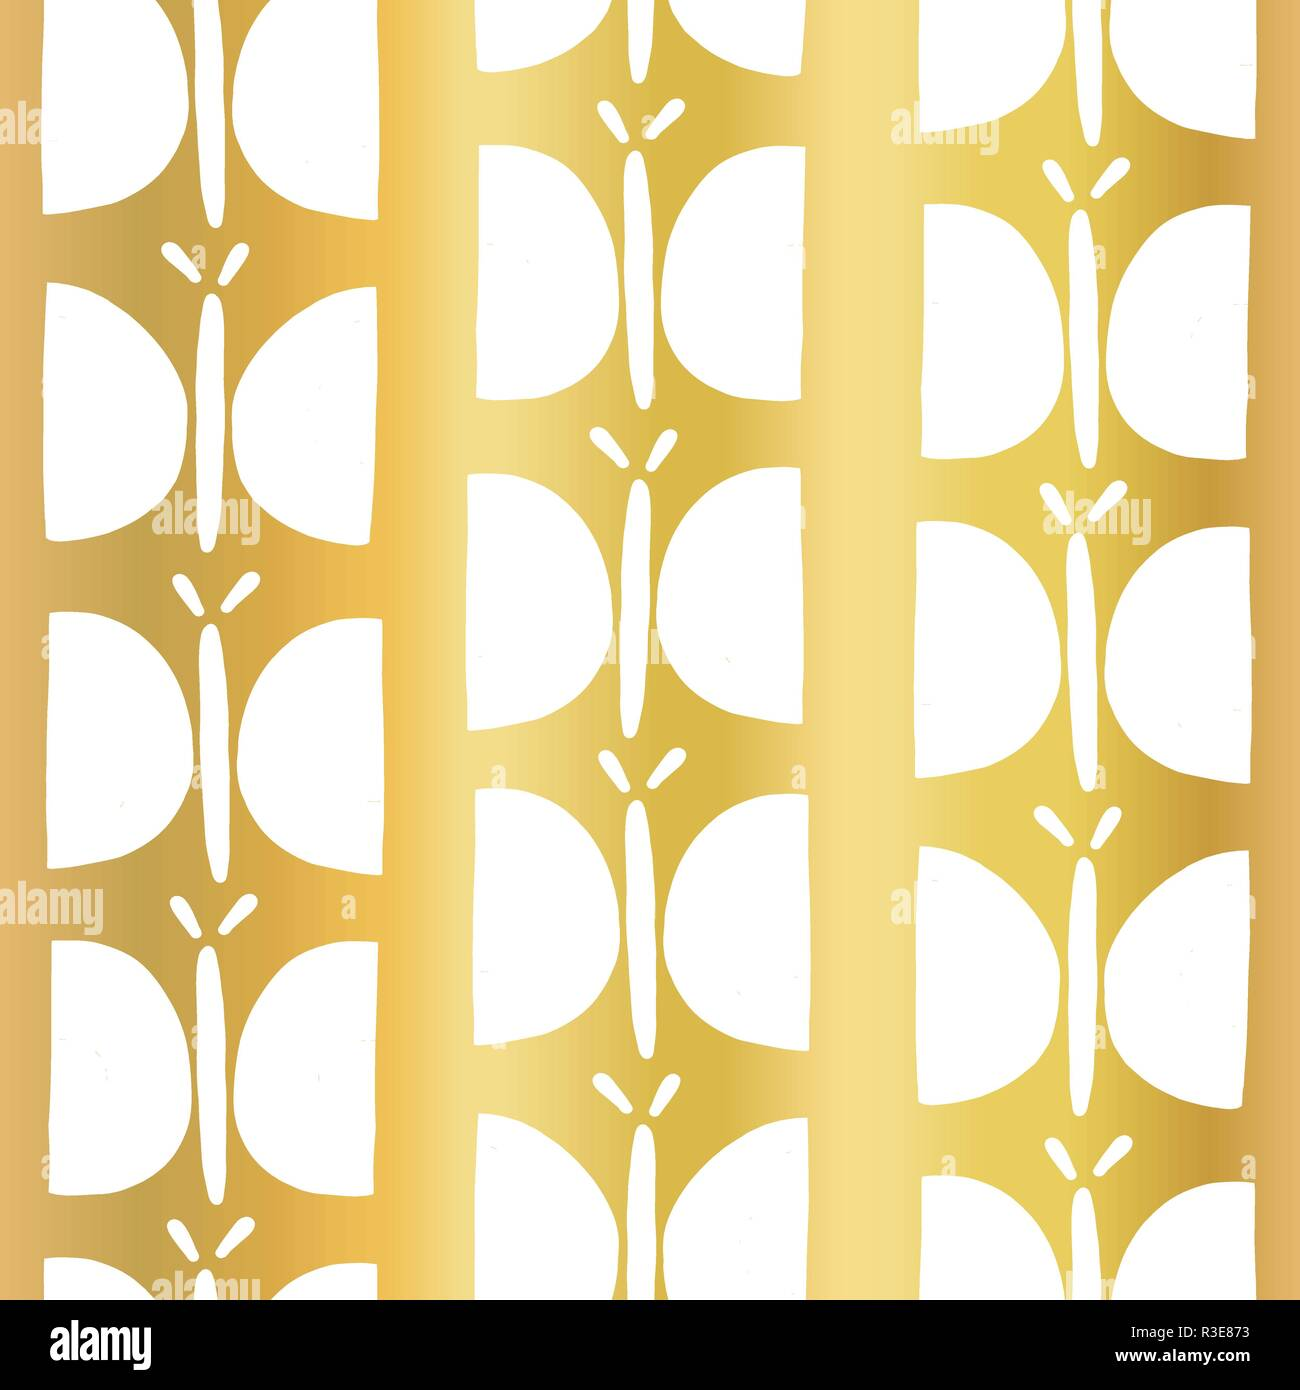 Gold Foil Butterfly Seamless Vector Pattern White Hand Drawn